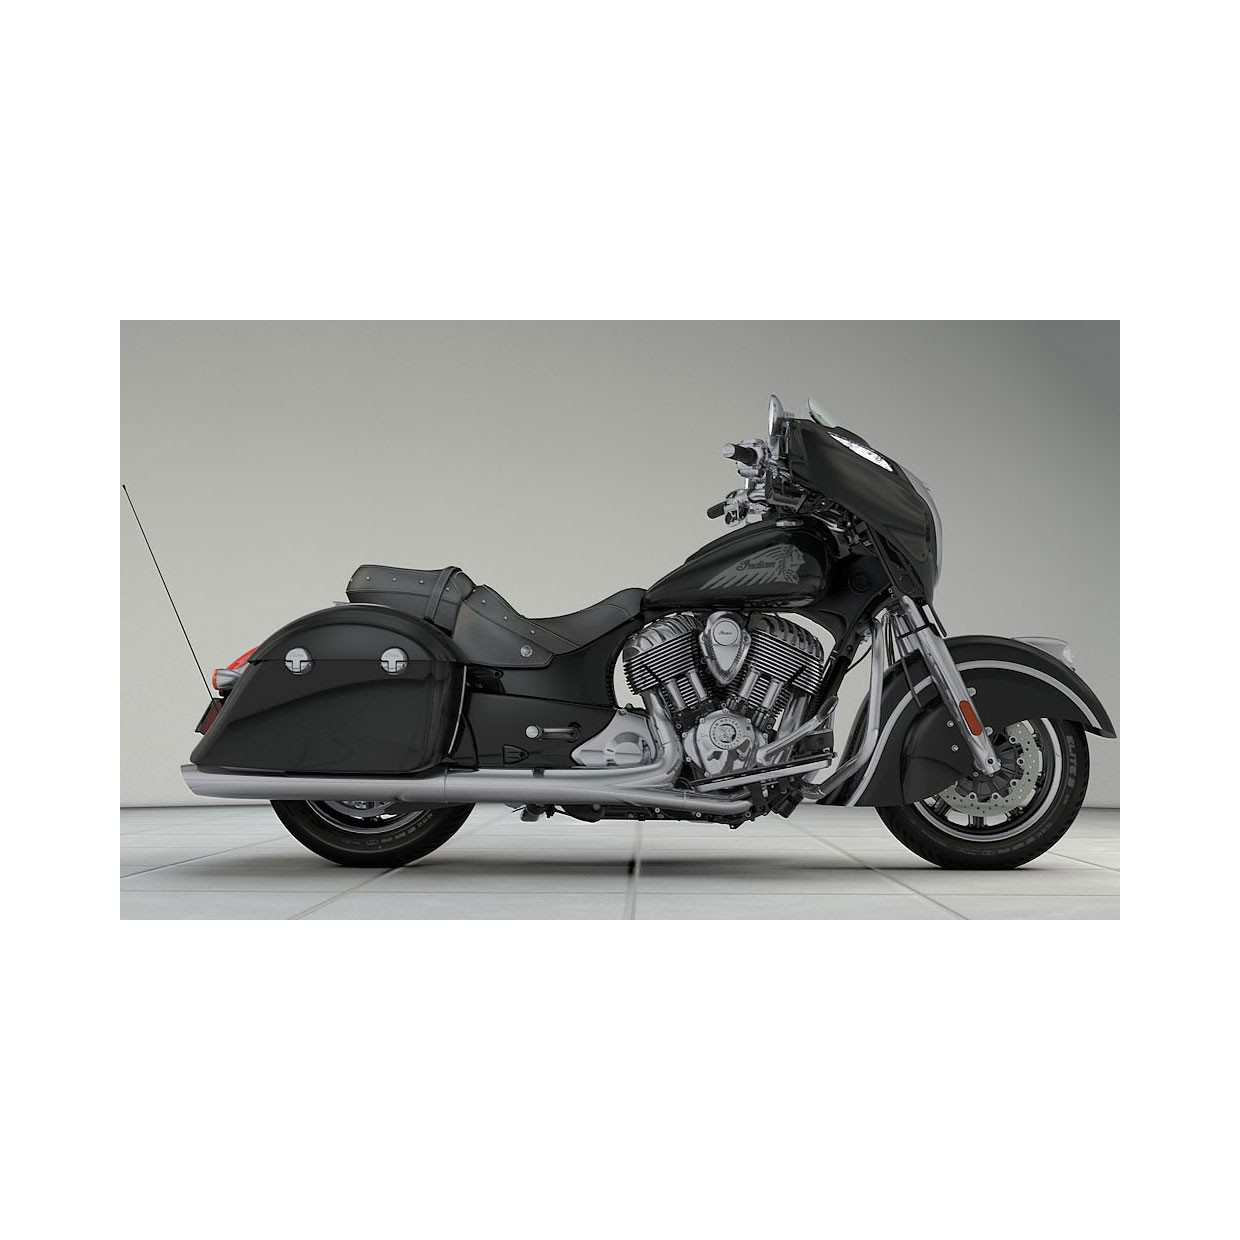 INDIAN Chieftain Thunder Black Pearl